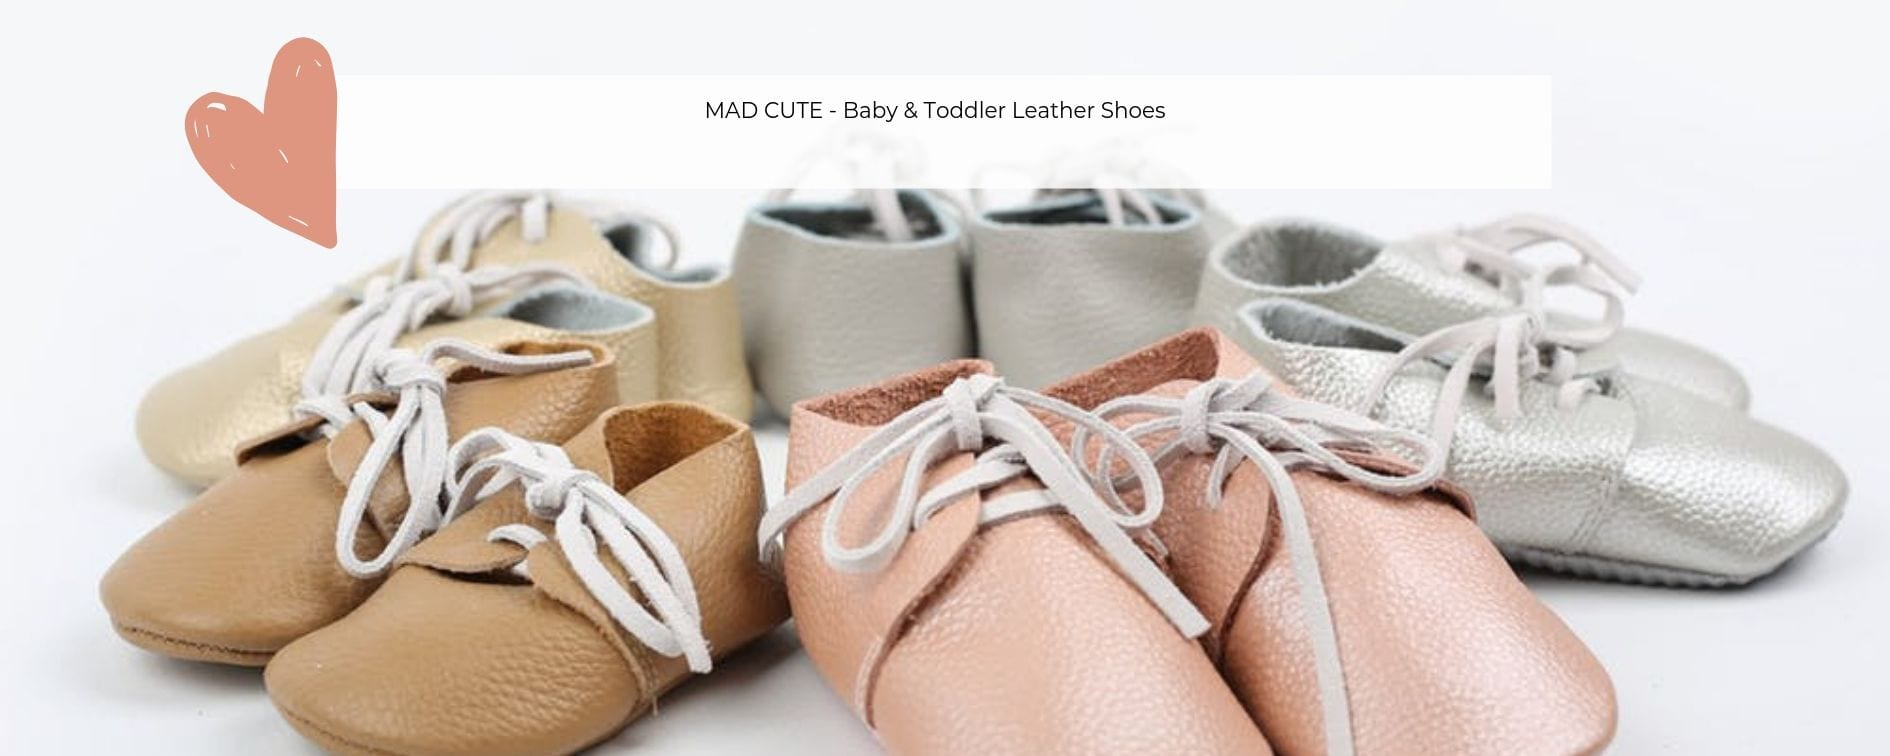 Baby & Toddler leather shoes